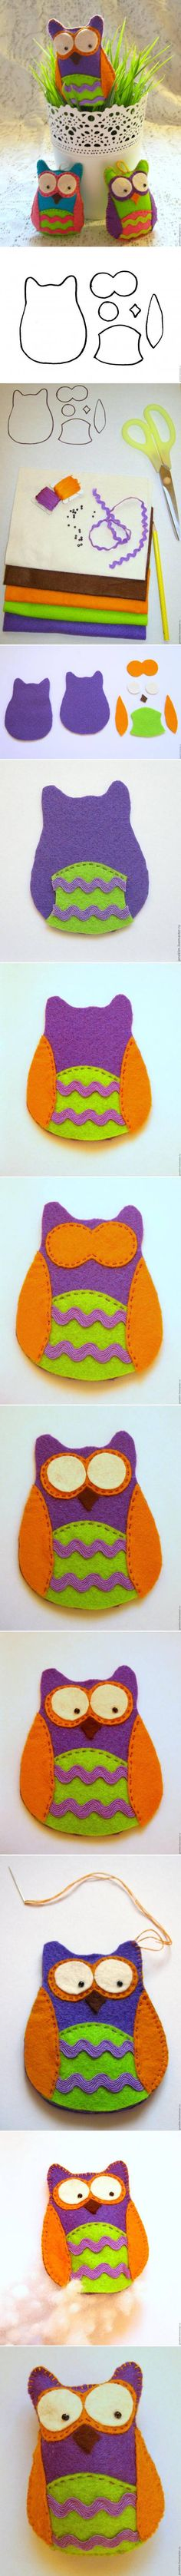 DIY Pretty Felt Owl